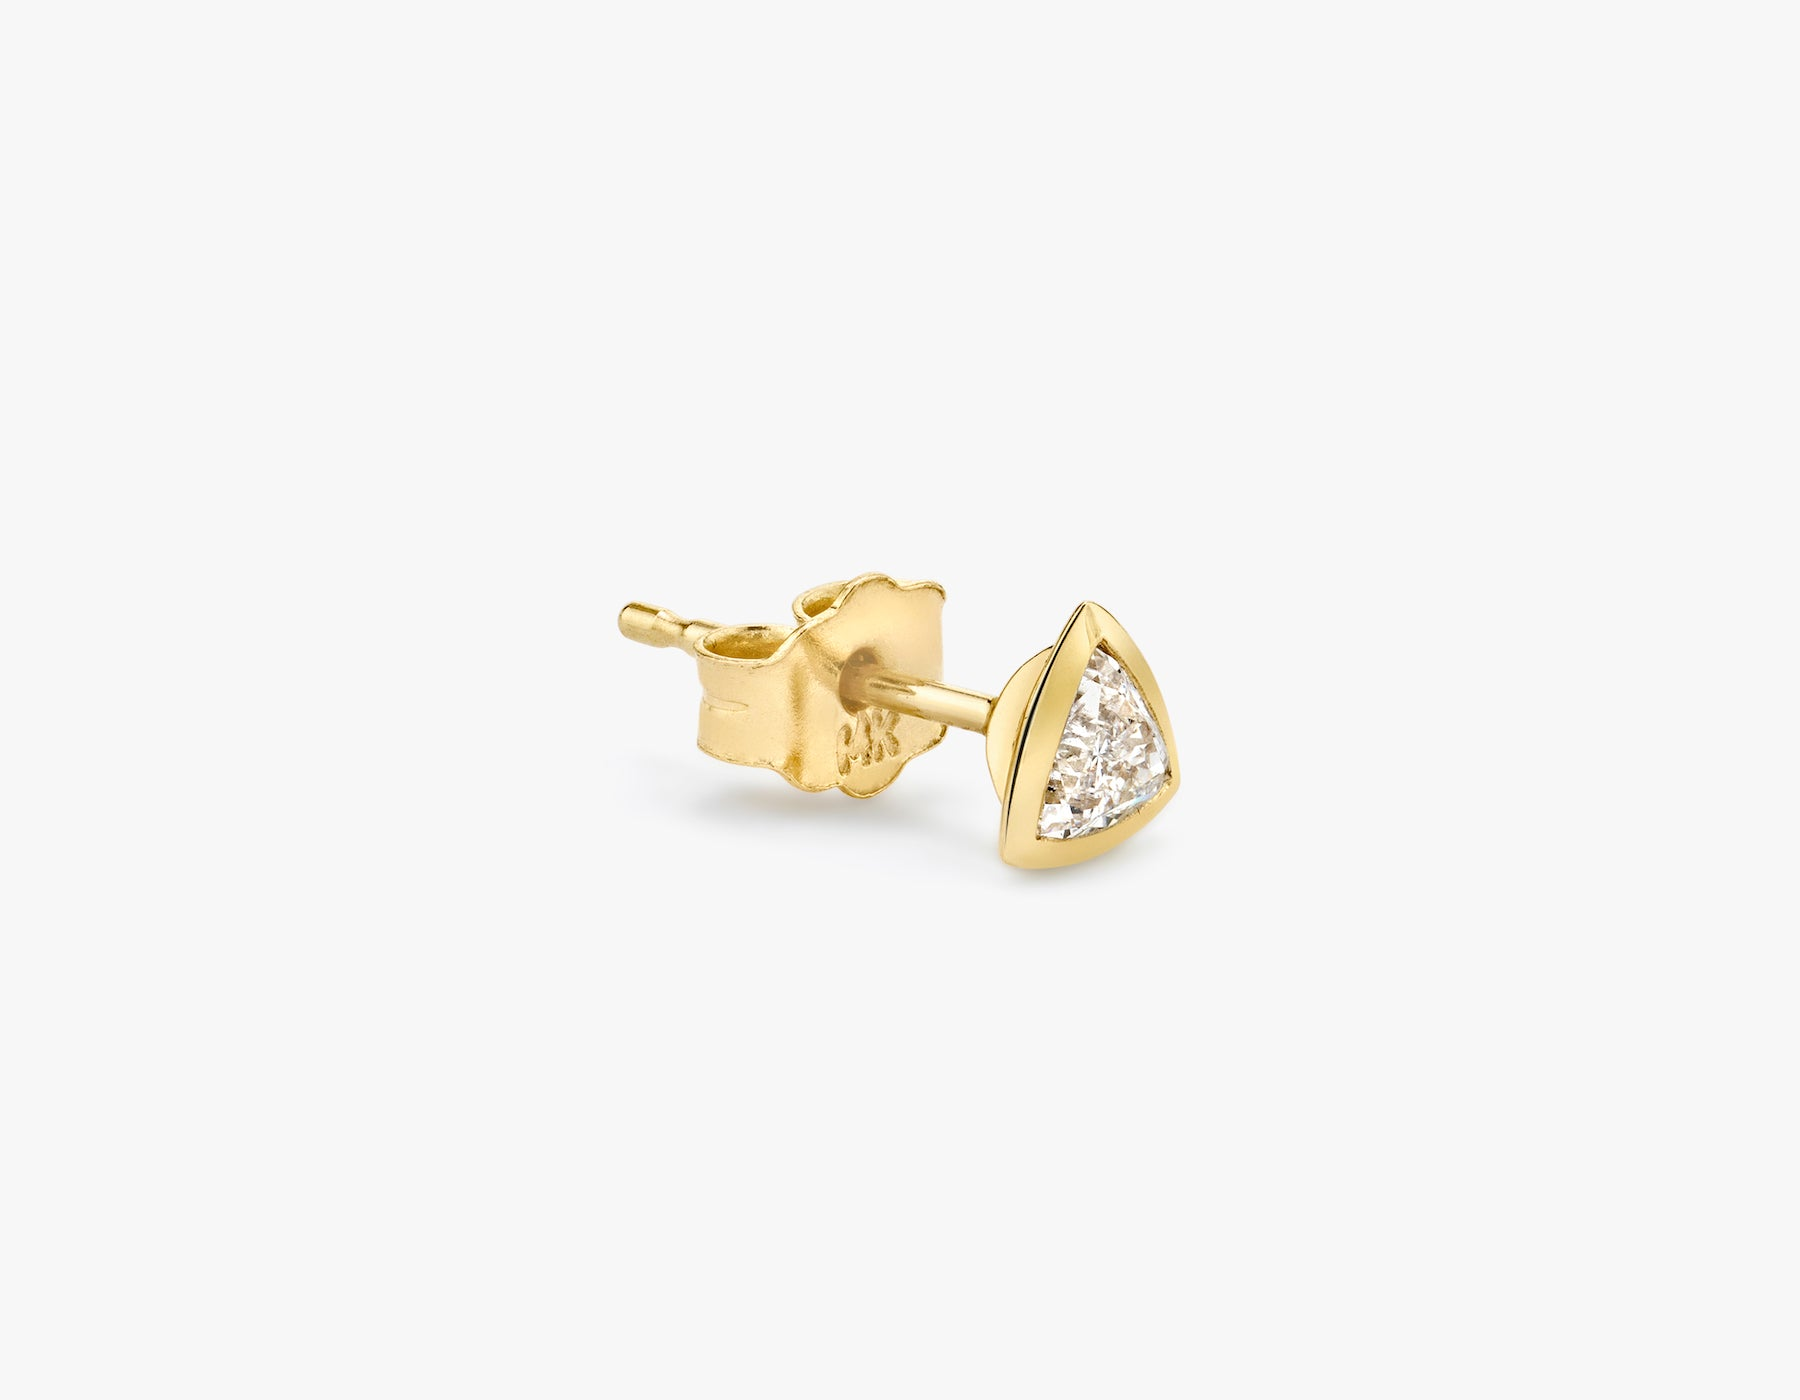 Vrai classic minimalist Trillion Diamond Bezel Stud Earring, 14K Yellow Gold